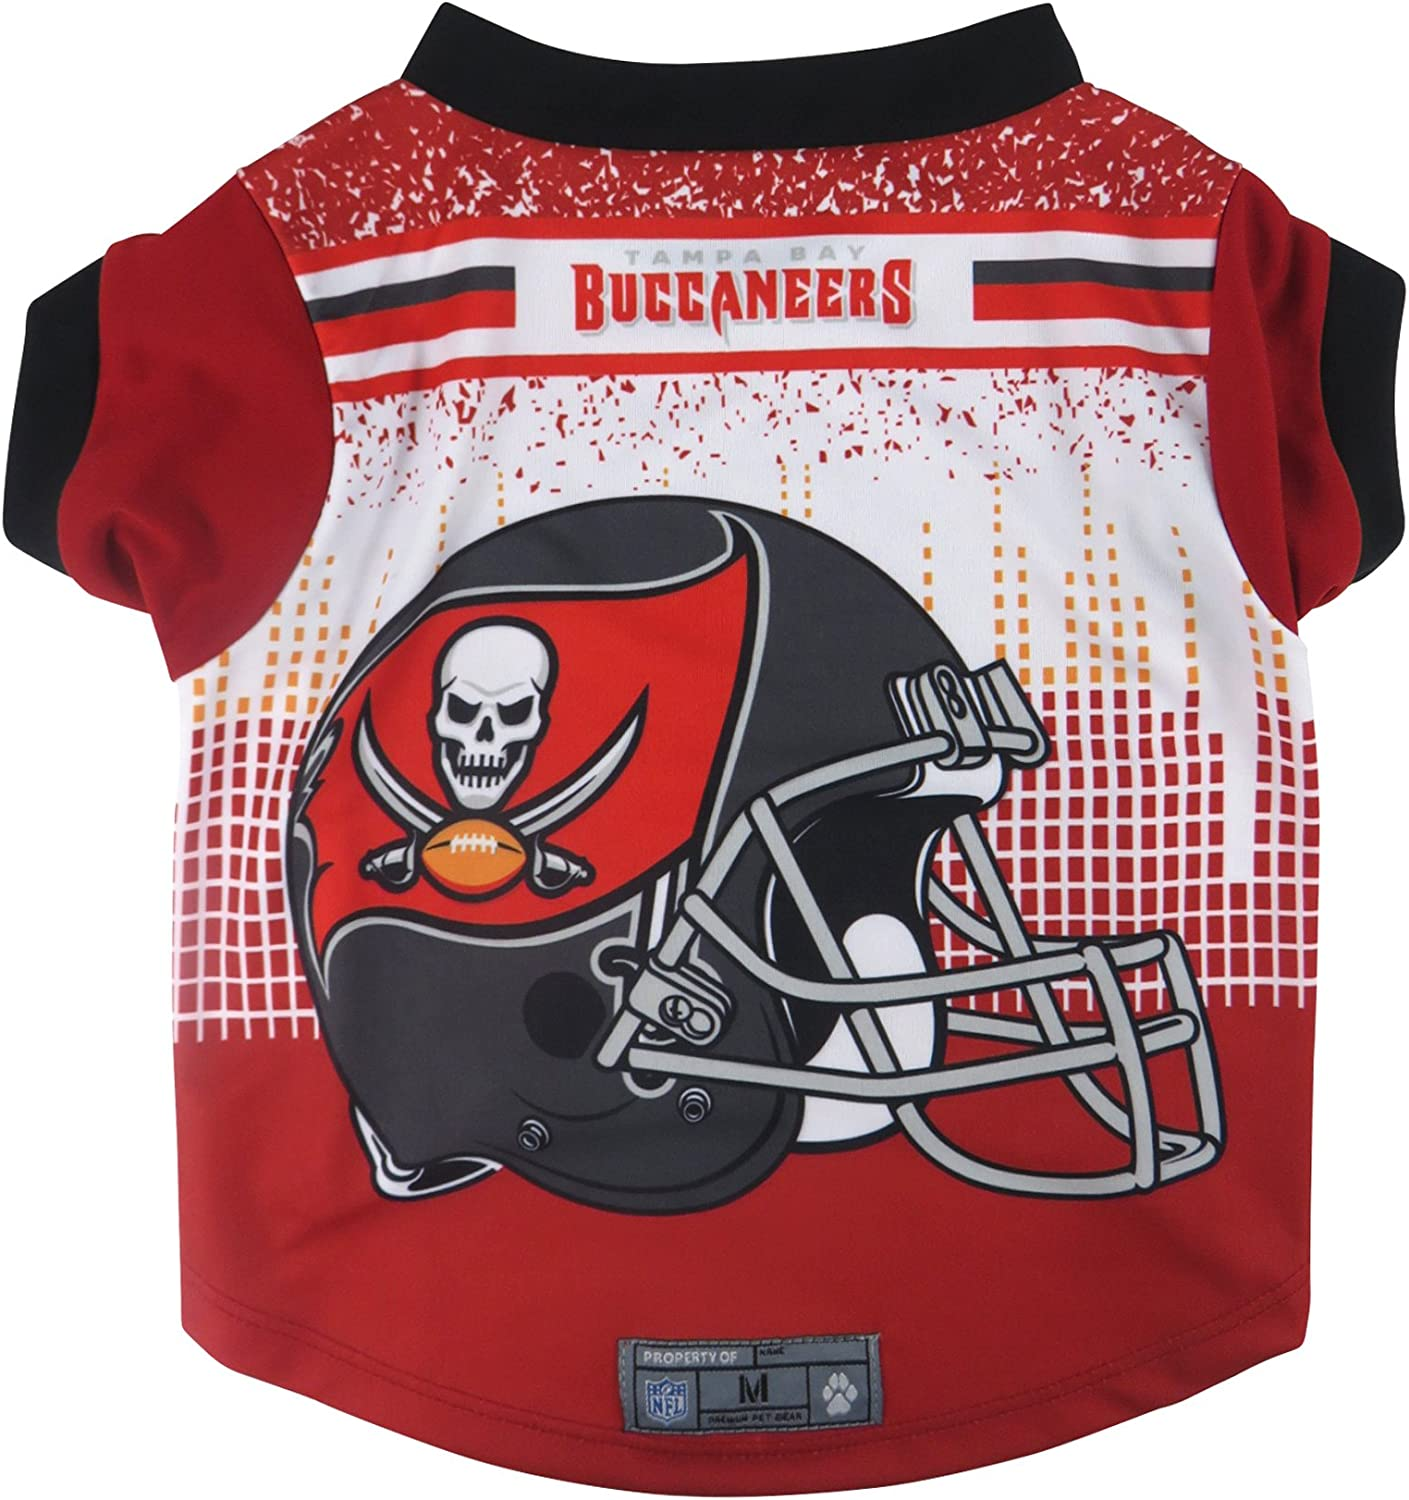 Large Littlearth NFL Tampa Bay Buccaneers Pet Performance T-shirt